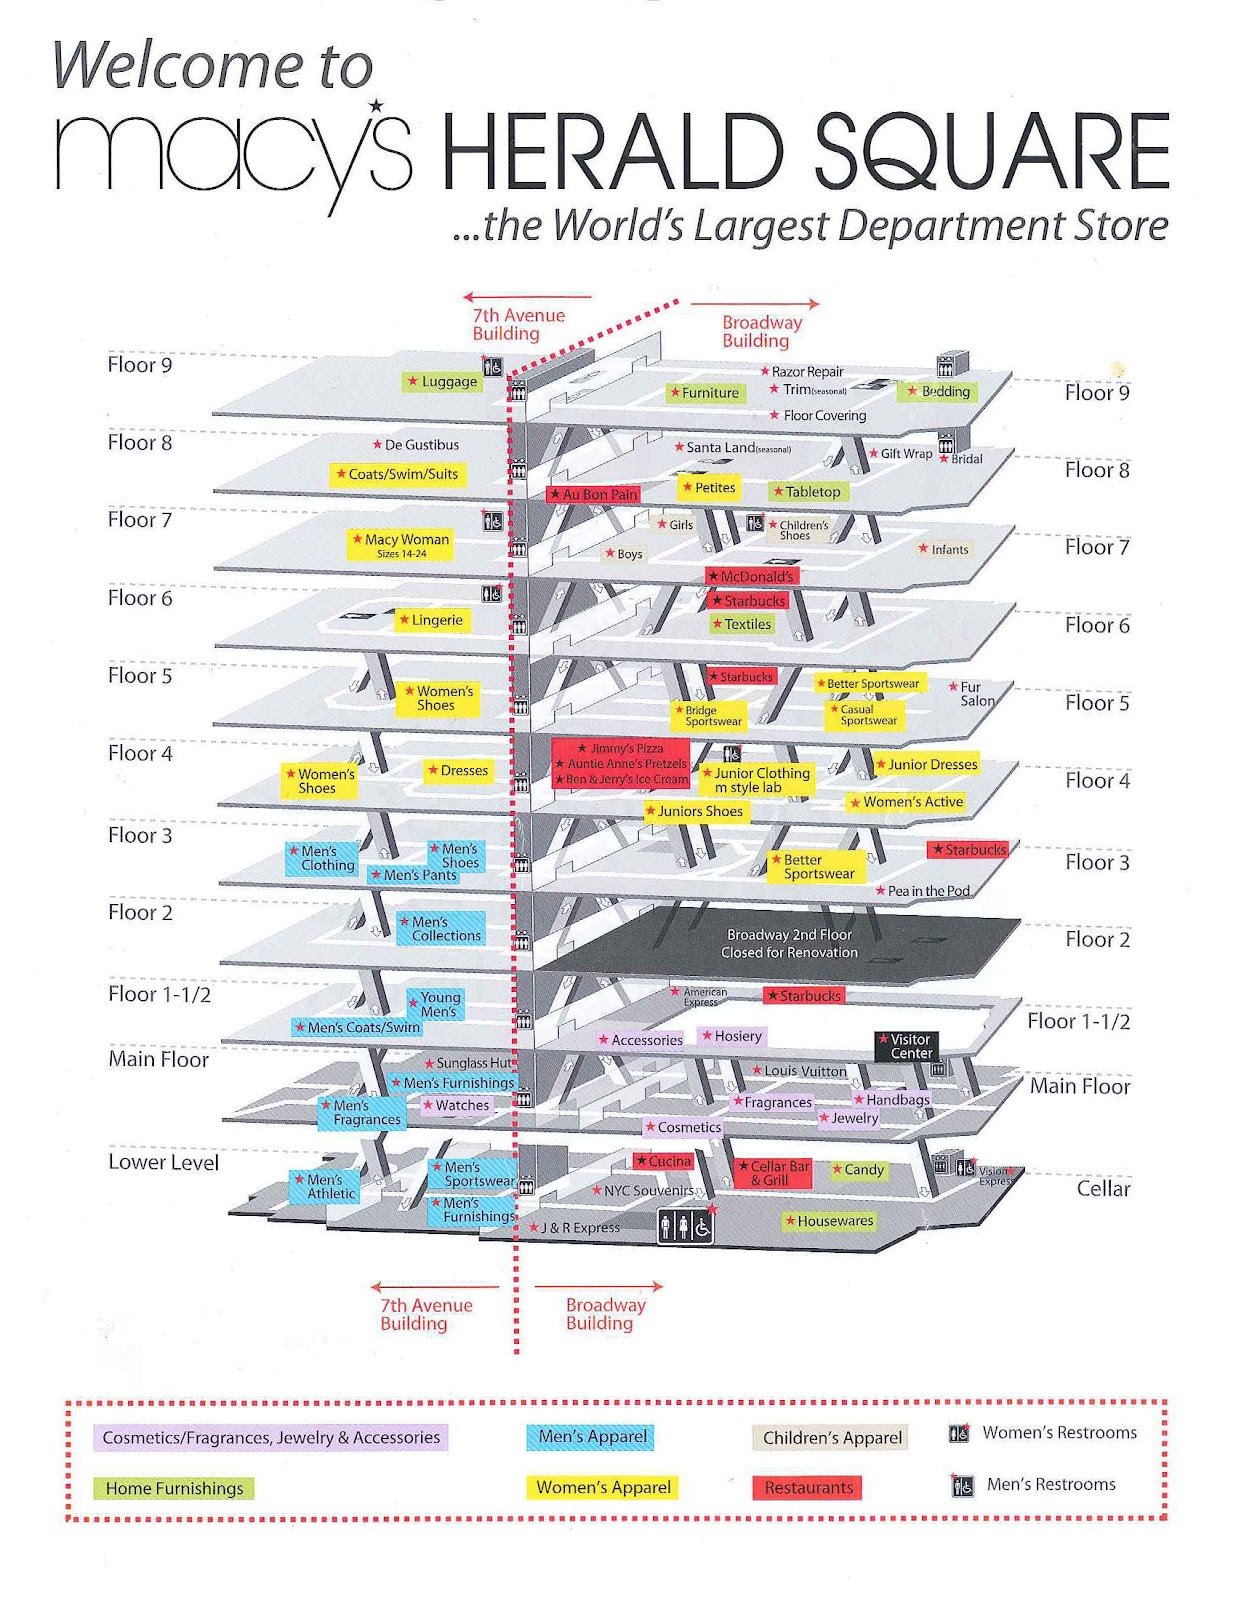 Fashion Herald: Macy's Herald Square: The Renovation Map on macy's nyc map, macy's app, macy's store, macy's restaurant nyc, macy's floor plan, macy's kitchen islands, the metropolitan museum of art map, macy's layout, hell's kitchen map, macy's new york, macy's department map, macy's hours, macy's icon, macy's furniture gallery, micello indoor map, st. patrick's cathedral map, macy parade map, macy's manhattan map, macy's floor map, john f. kennedy international airport map,